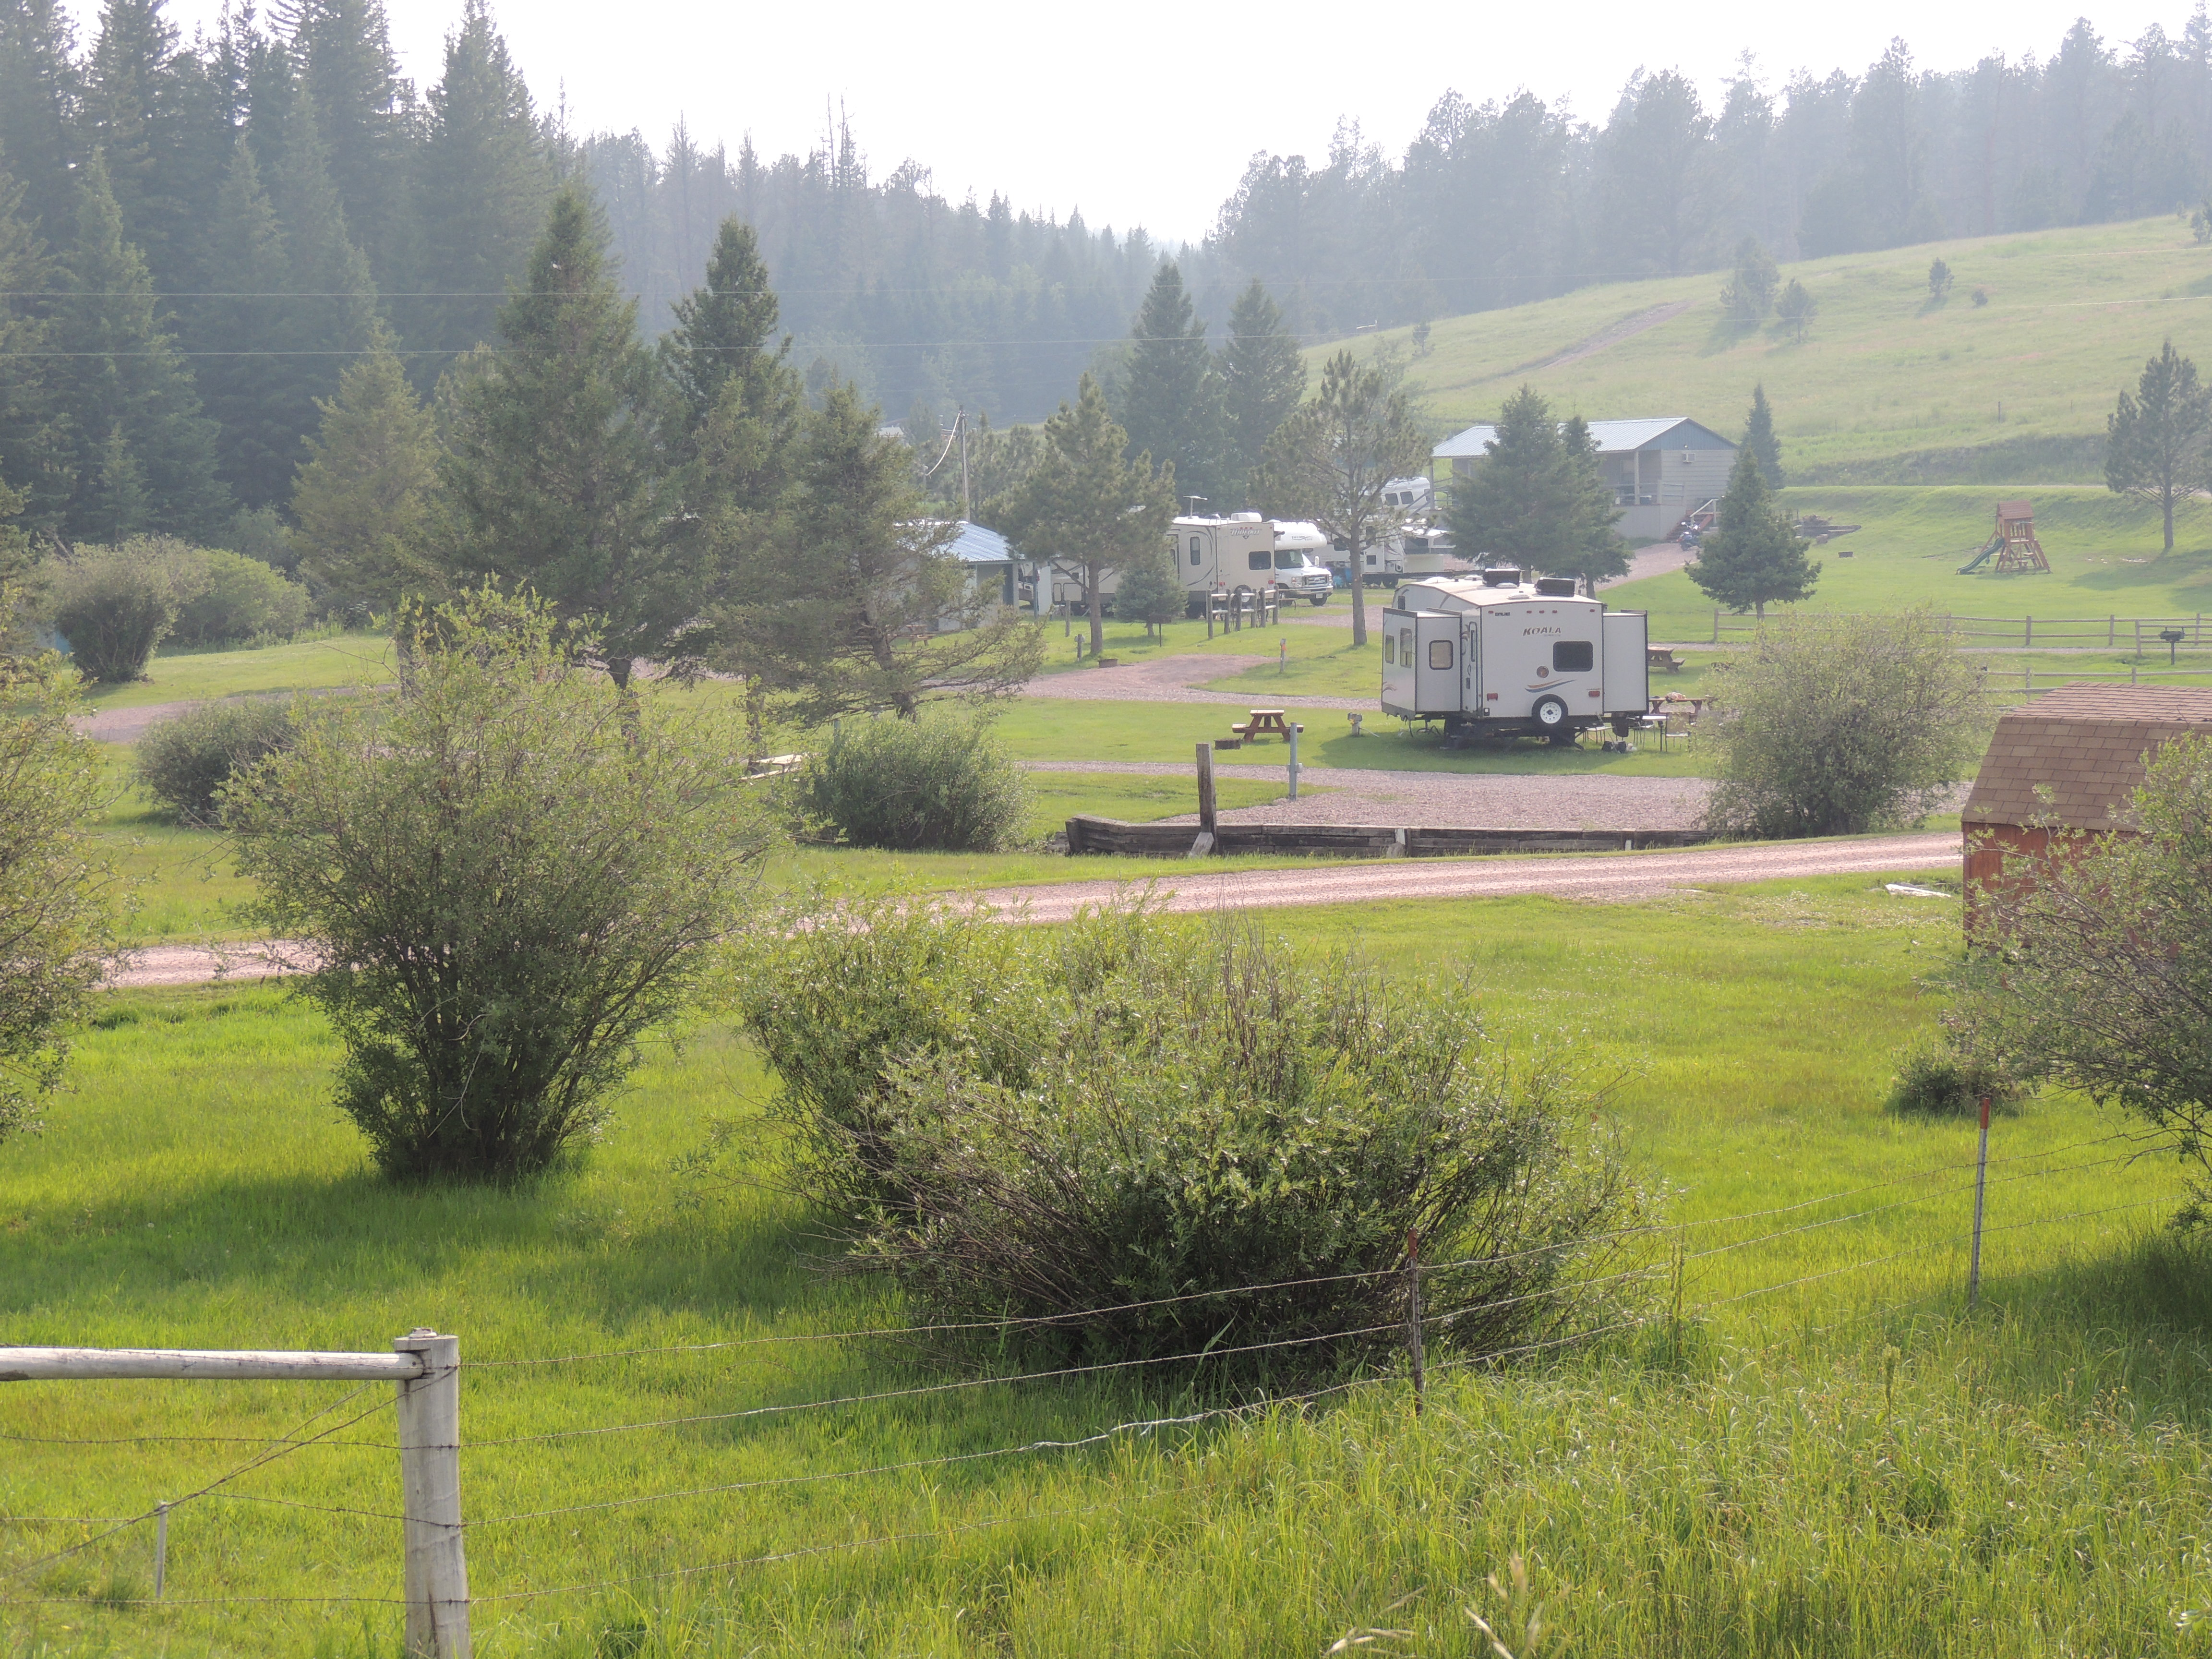 Black Hills ATV Resort & Campground